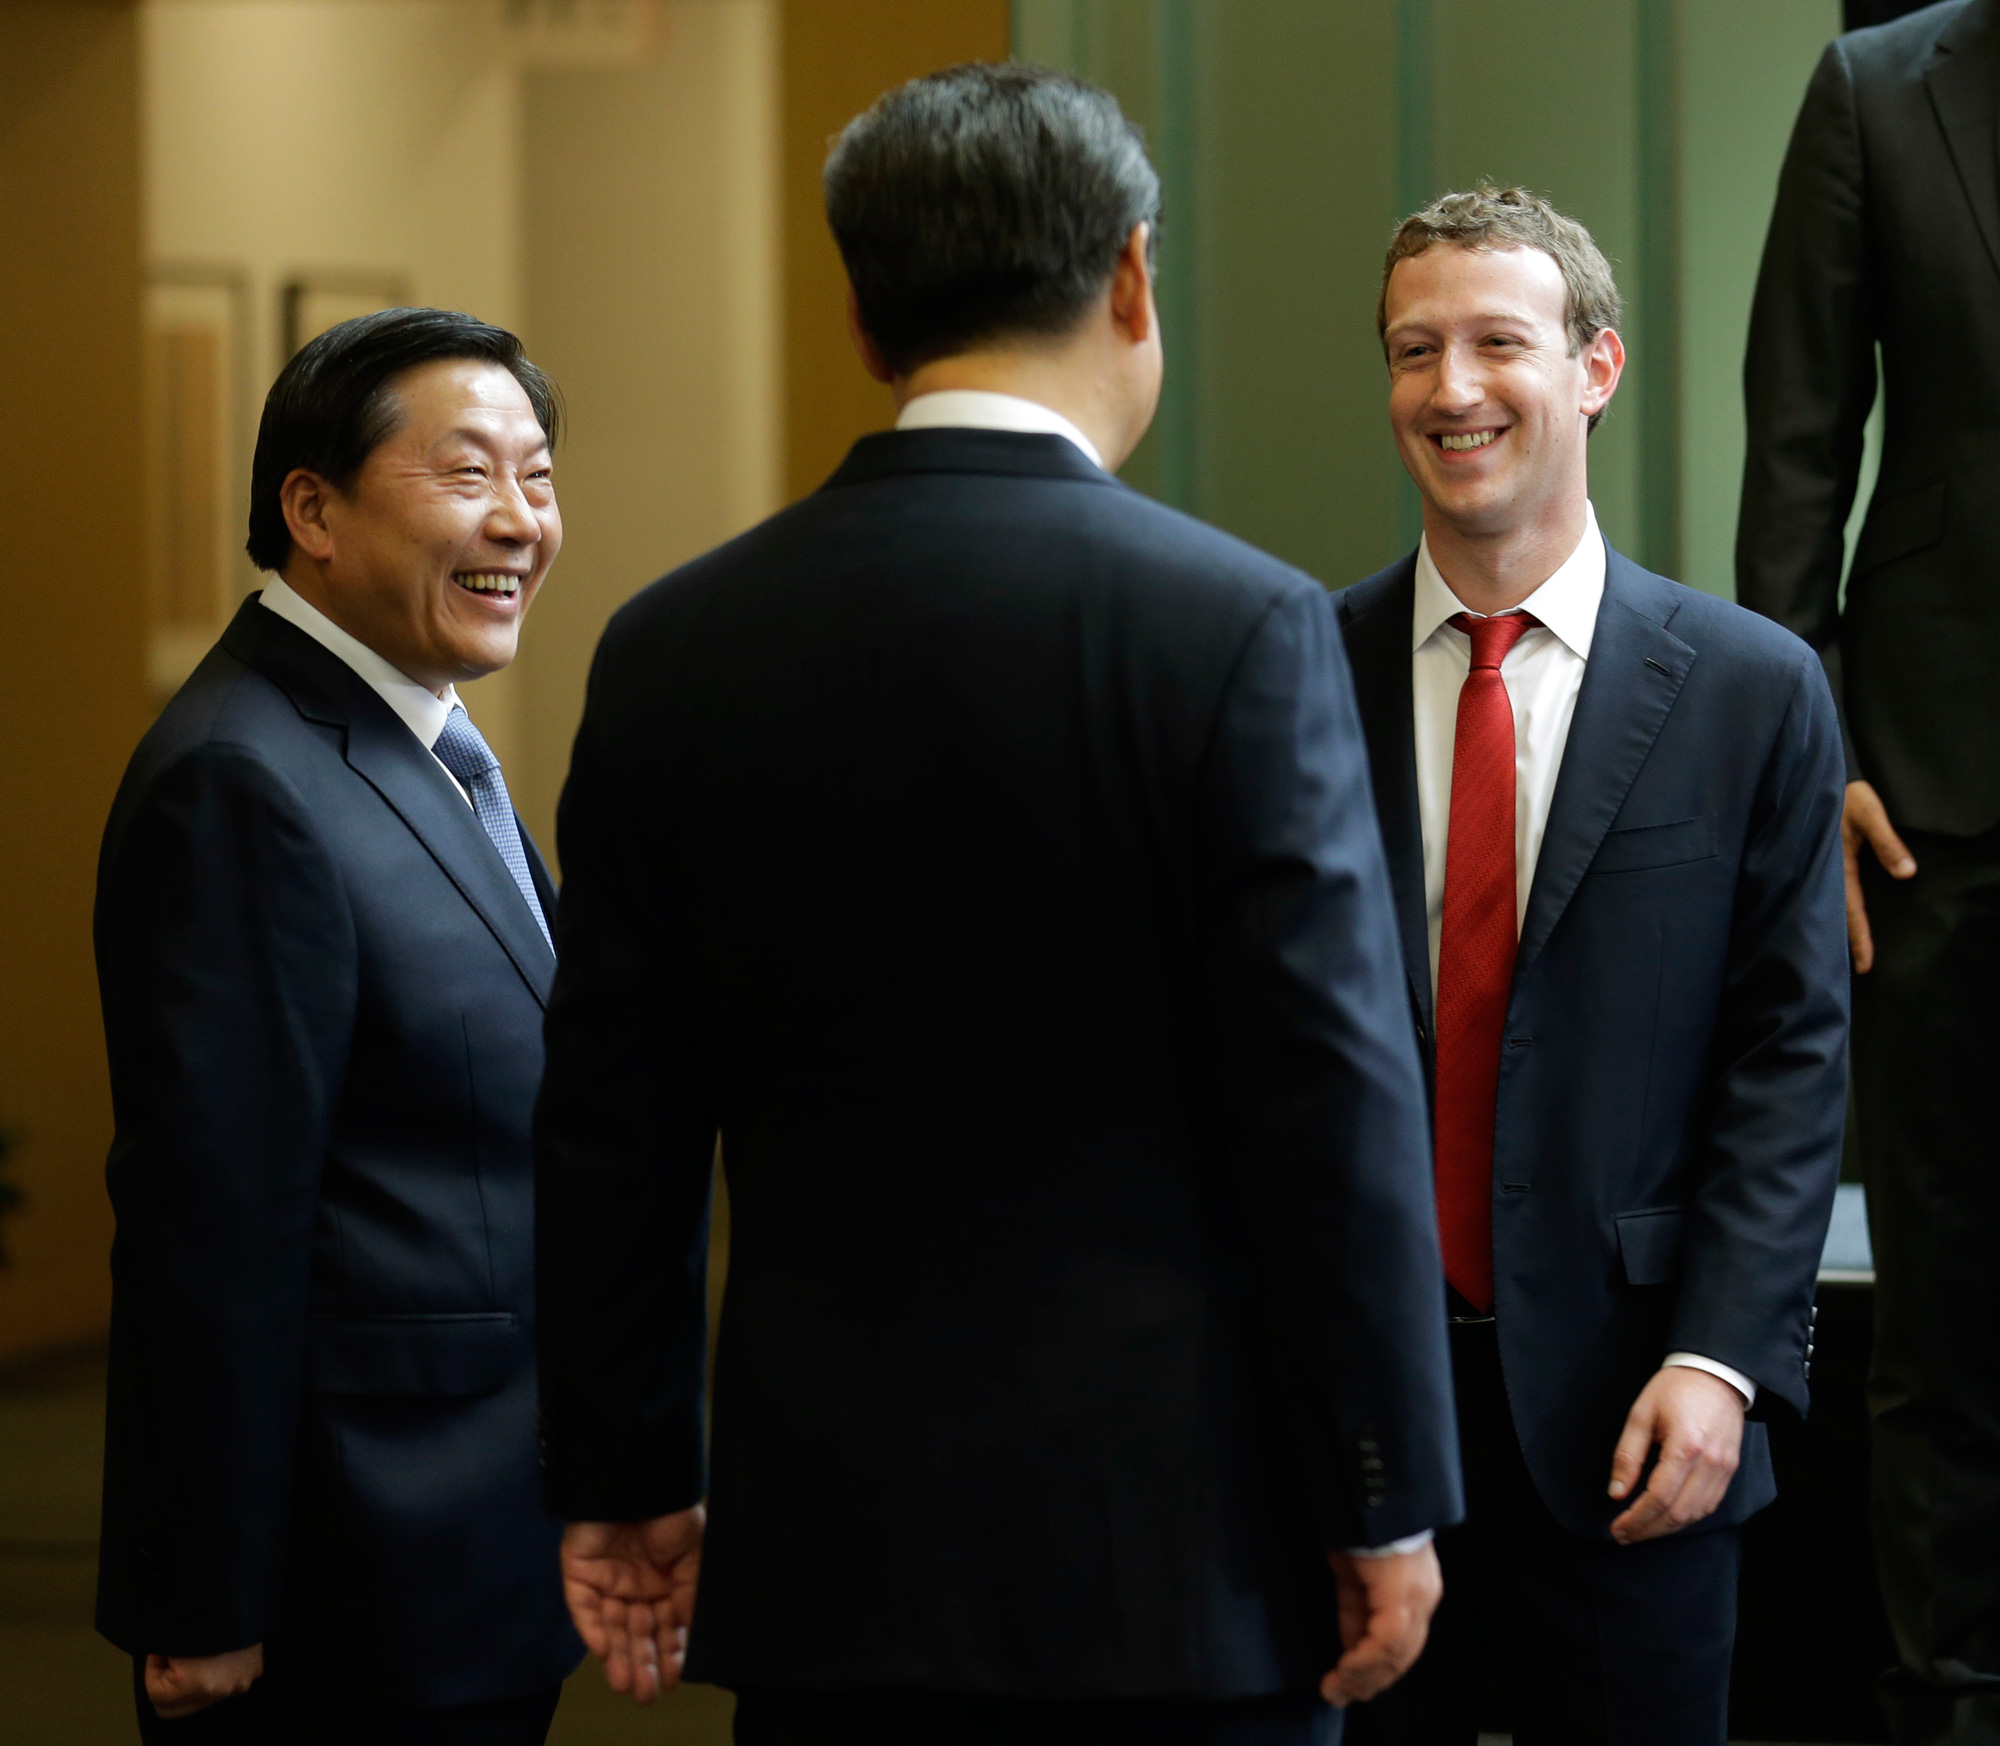 Lu Wei, China's Internet czar (left), speaks with Facebook CEO Mark Zuckerberg and Chinese president Xi Jinping at a meeting in 2015.